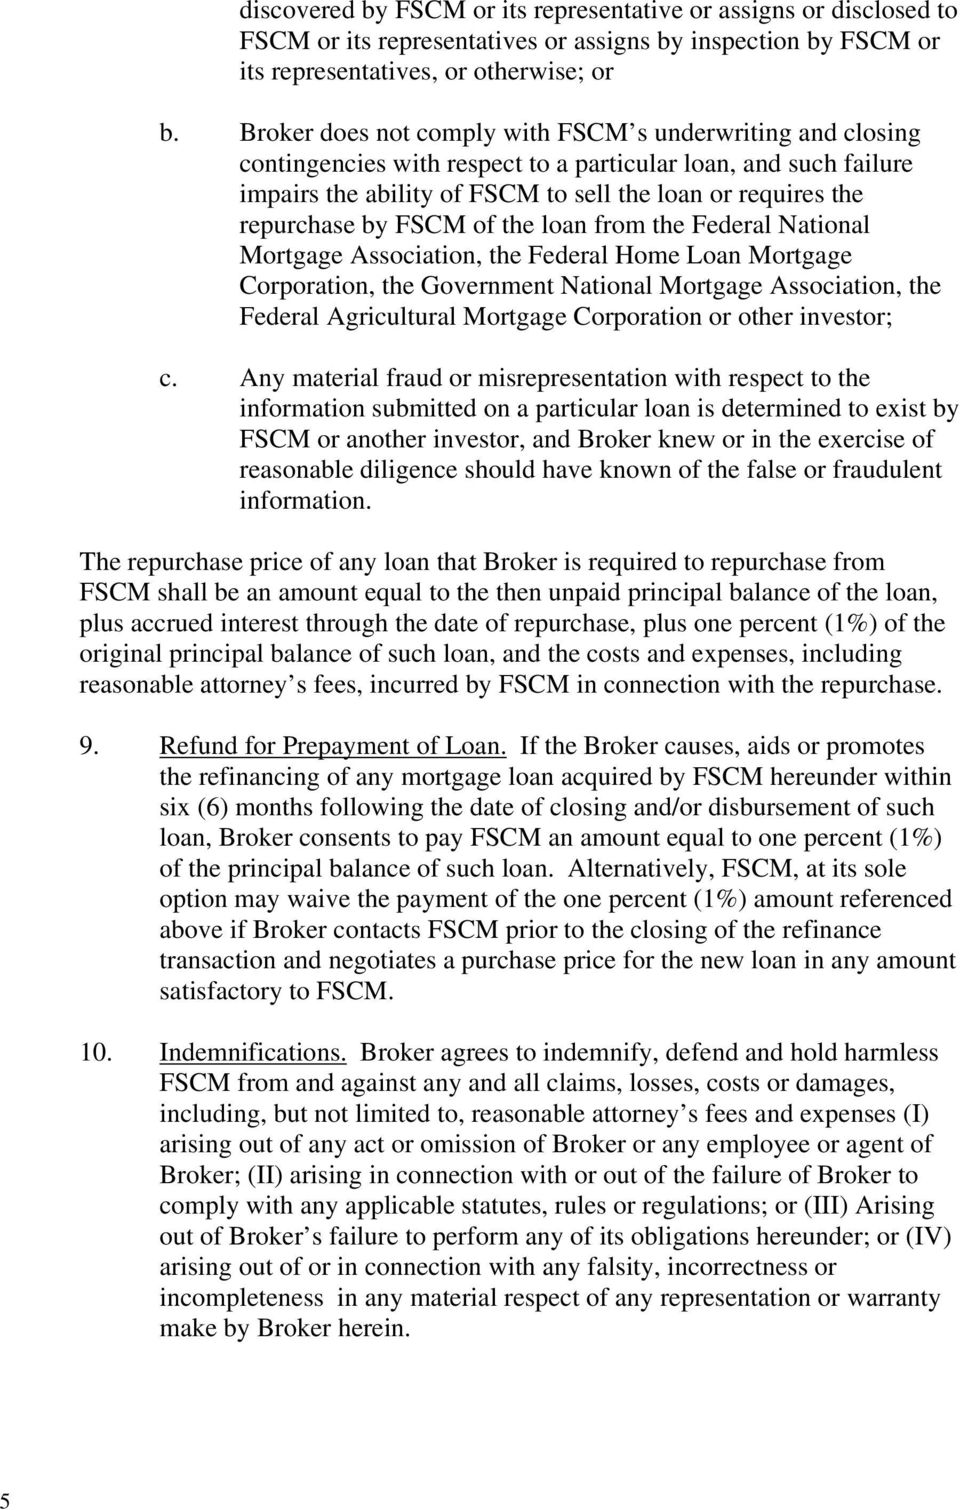 by FSCM of the loan from the Federal National Mortgage Association, the Federal Home Loan Mortgage Corporation, the Government National Mortgage Association, the Federal Agricultural Mortgage